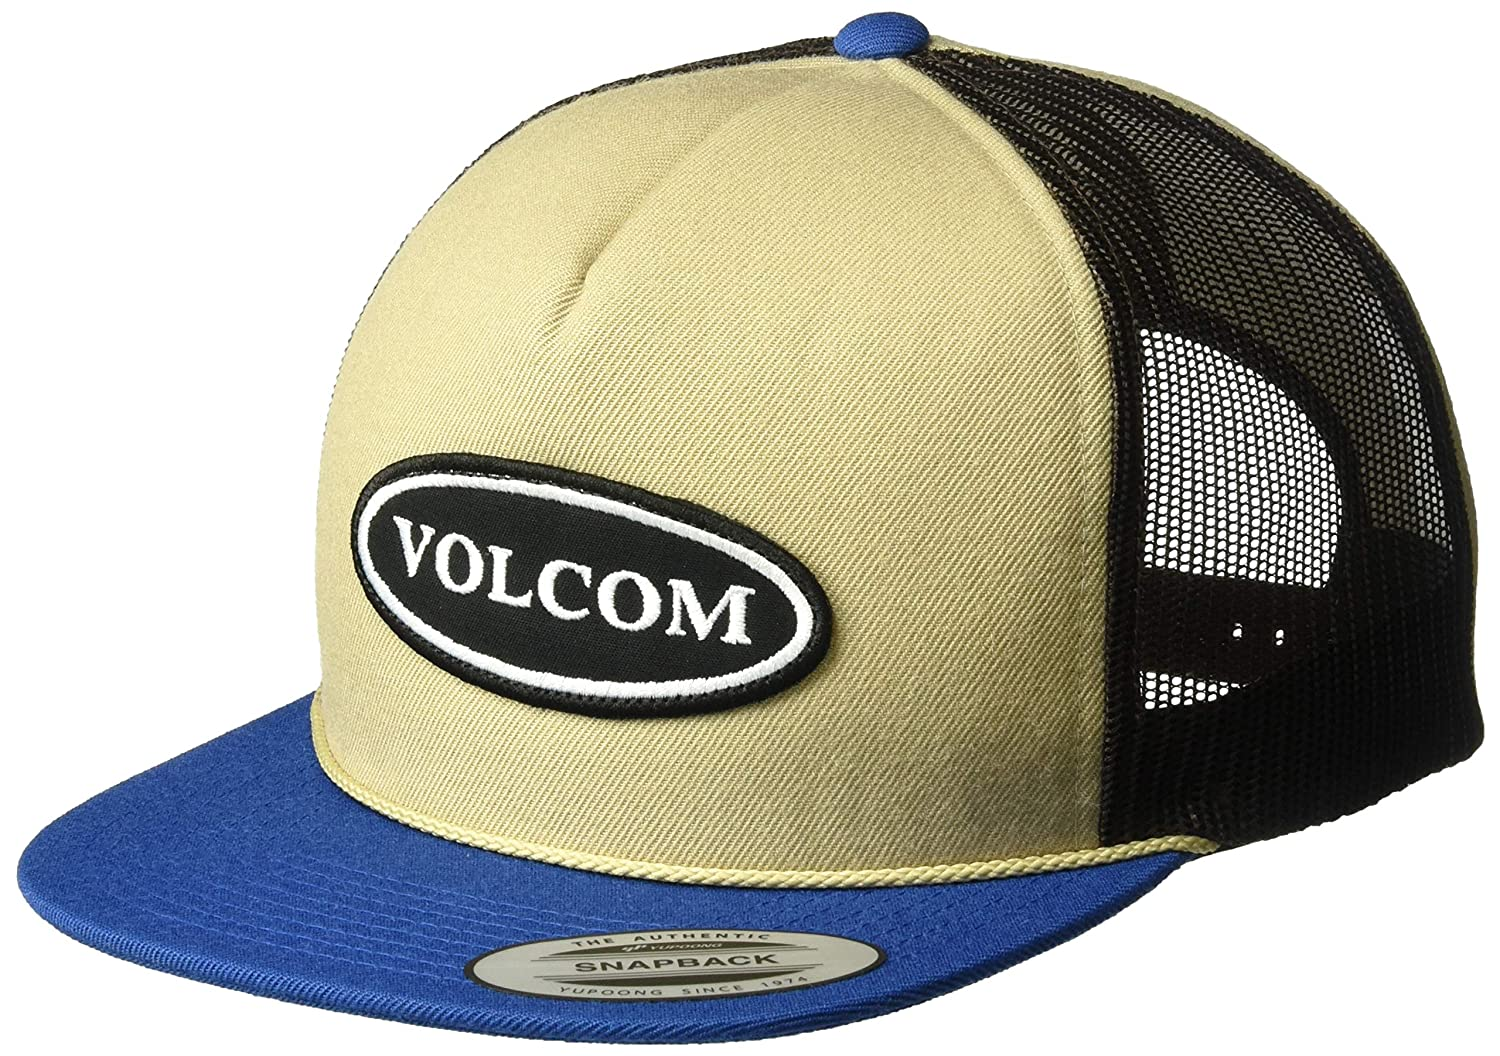 0b5156c5114beb Amazon.com: Volcom Men's Logger 5 Panel Cheese Style Snap Back Hat, Indigo  ONE Size FITS All: Clothing